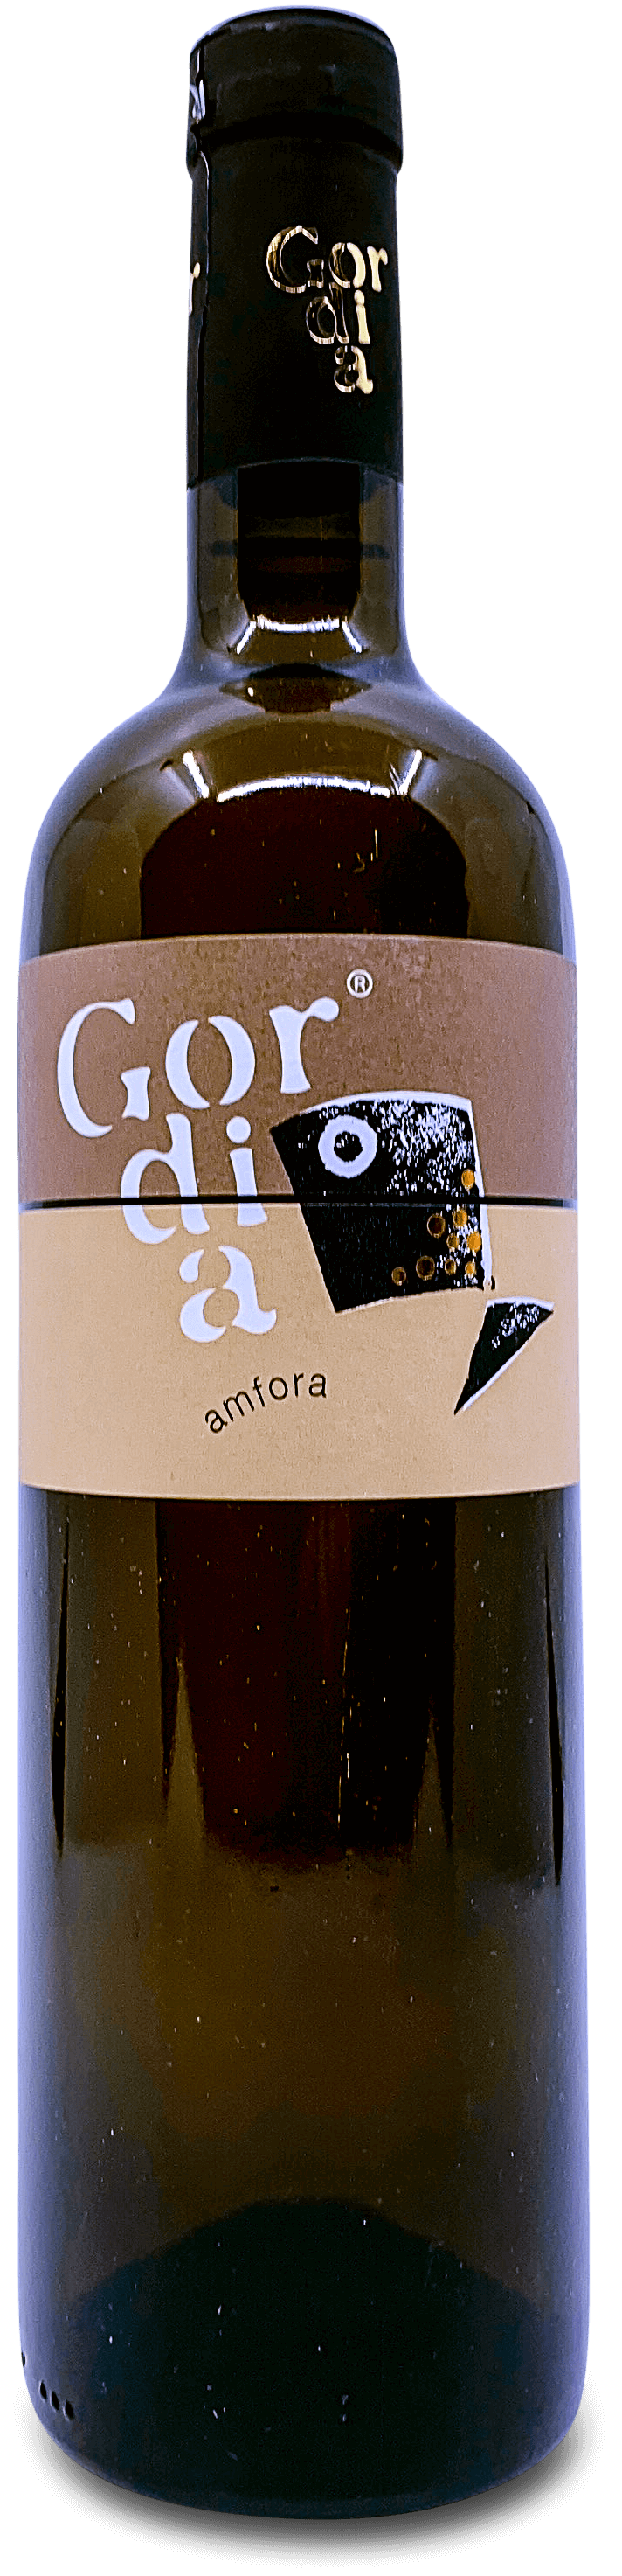 Gordia Amfora - Vinsupernaturel